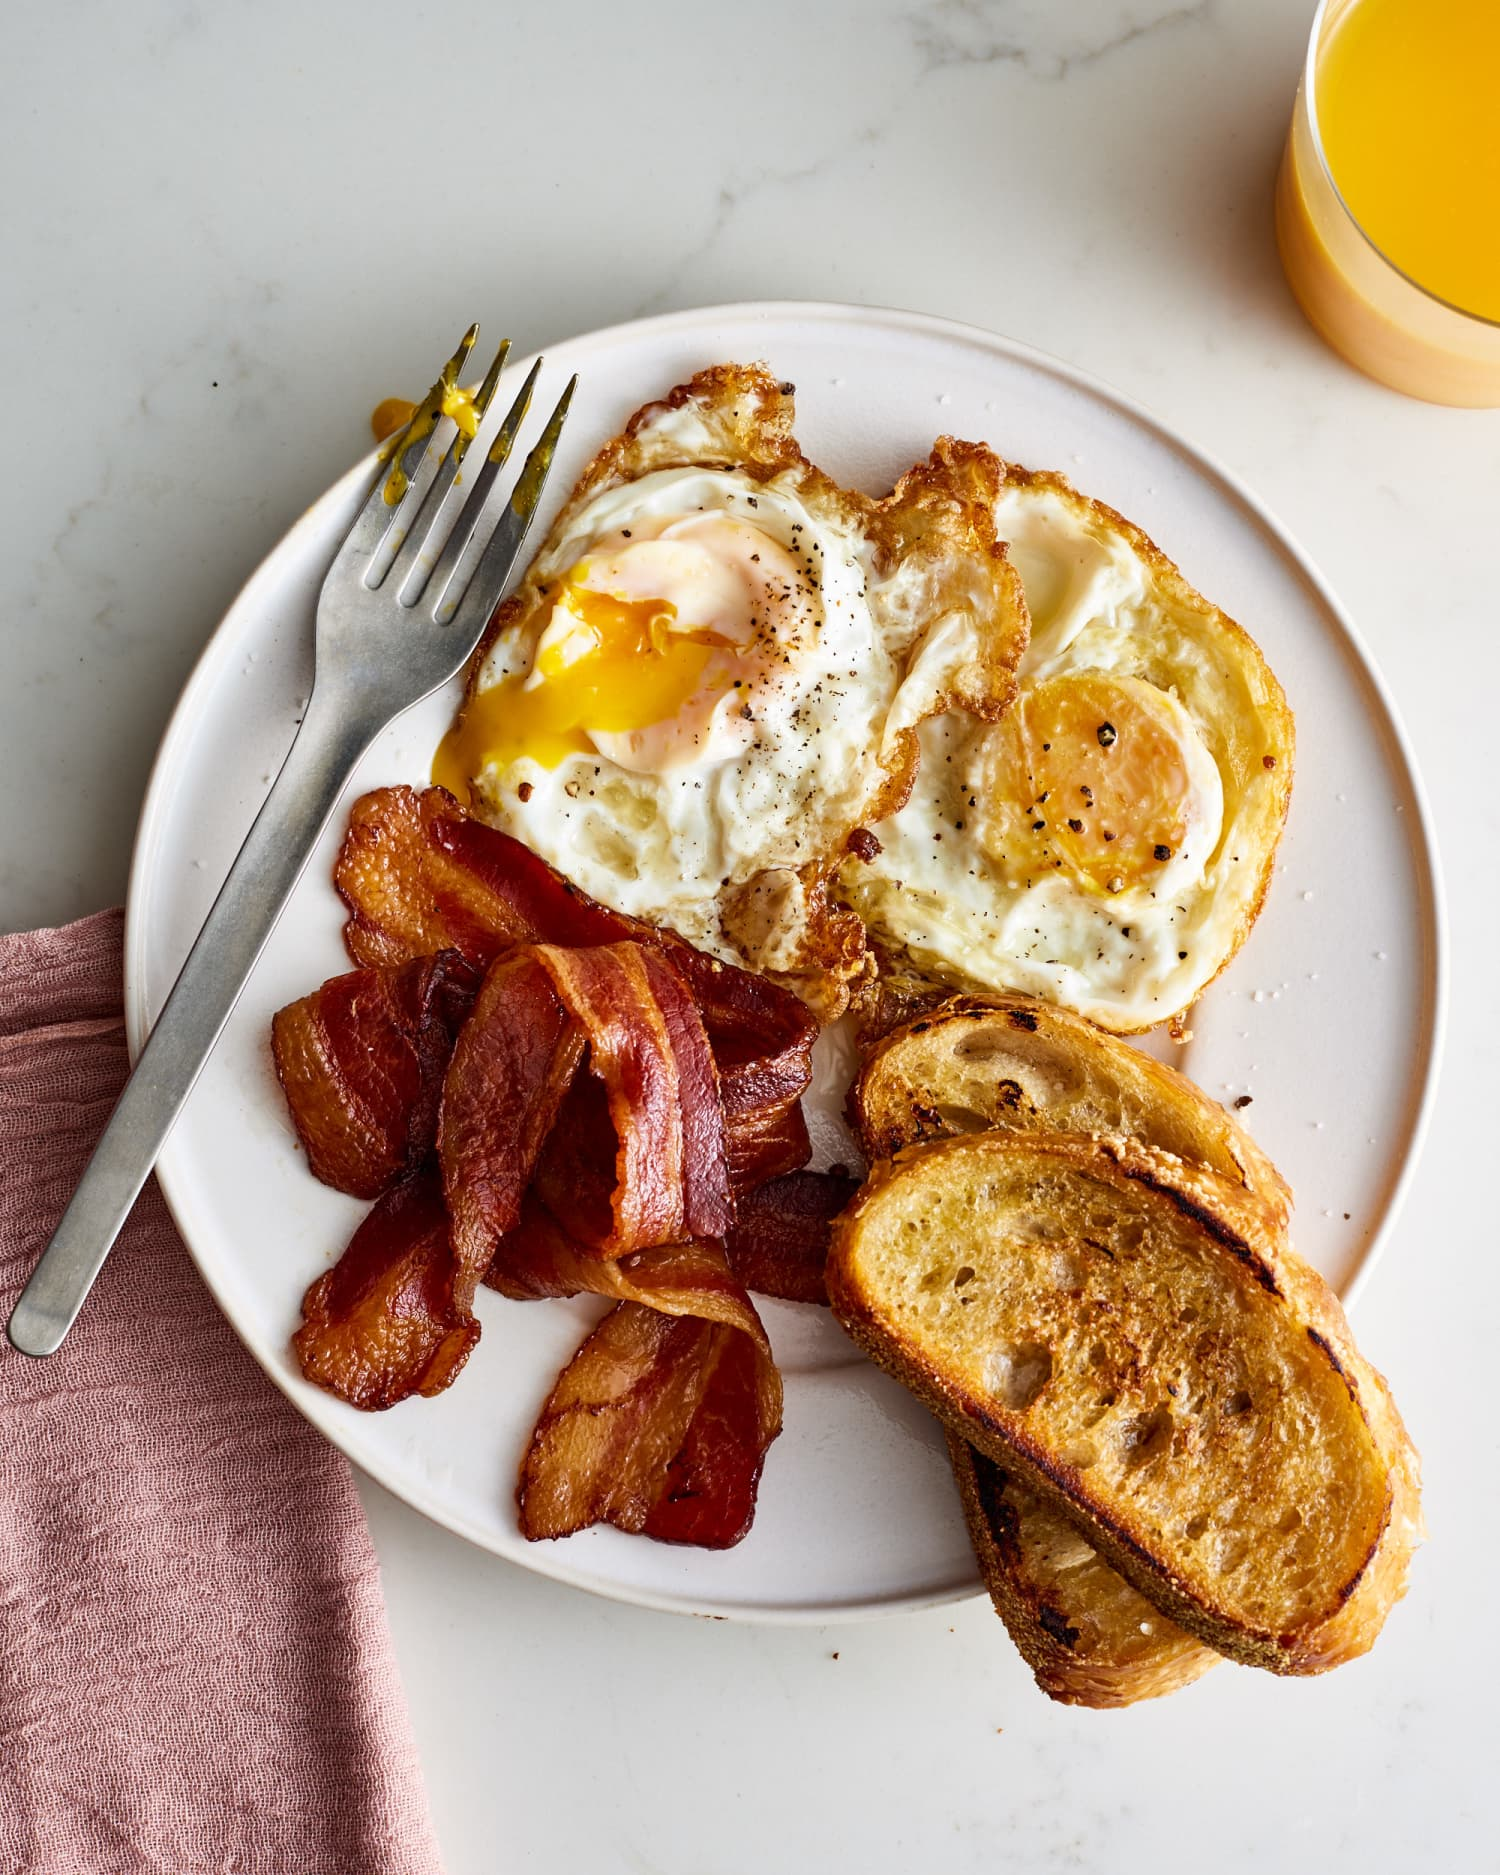 Spanish Fried Eggs Are the Most Decadent Thing You Can Do to a Simple Breakfast